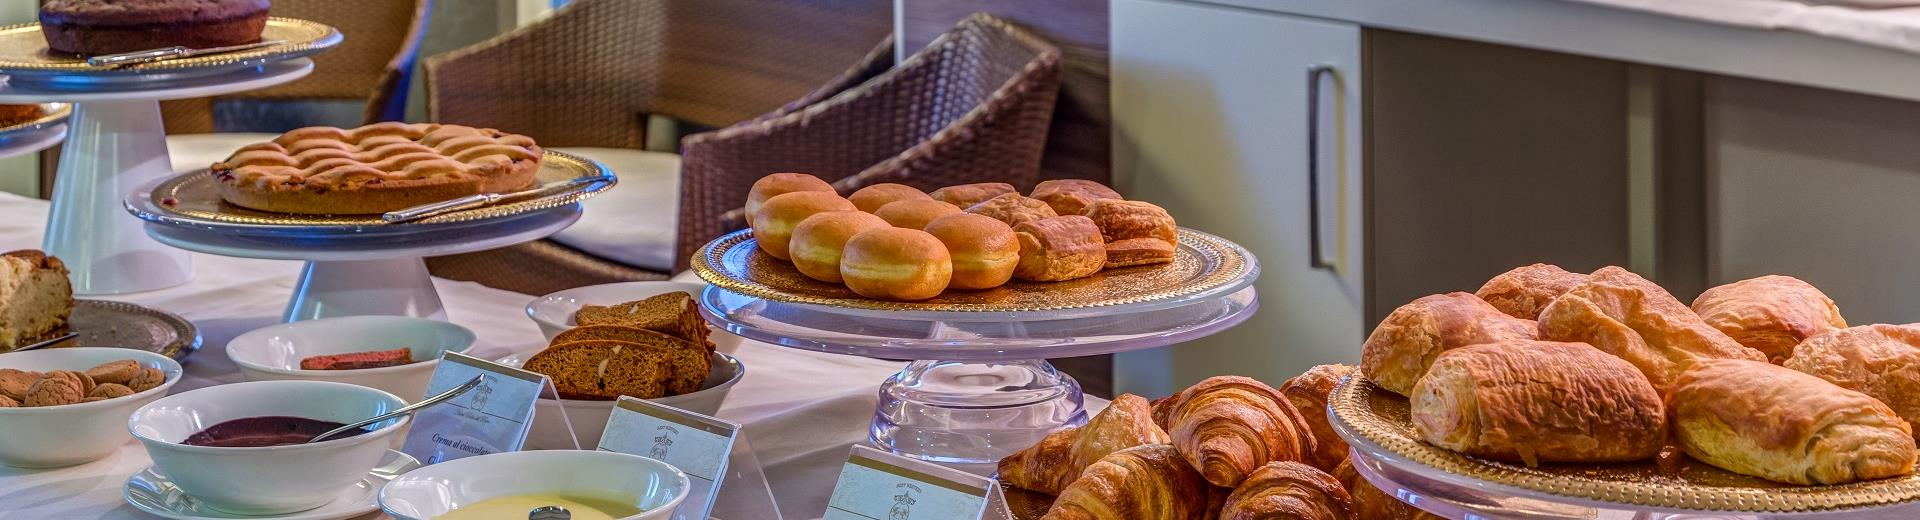 Tasty breakfast at BW Plus Hotel Perla del Porto in Catanzaro Lido